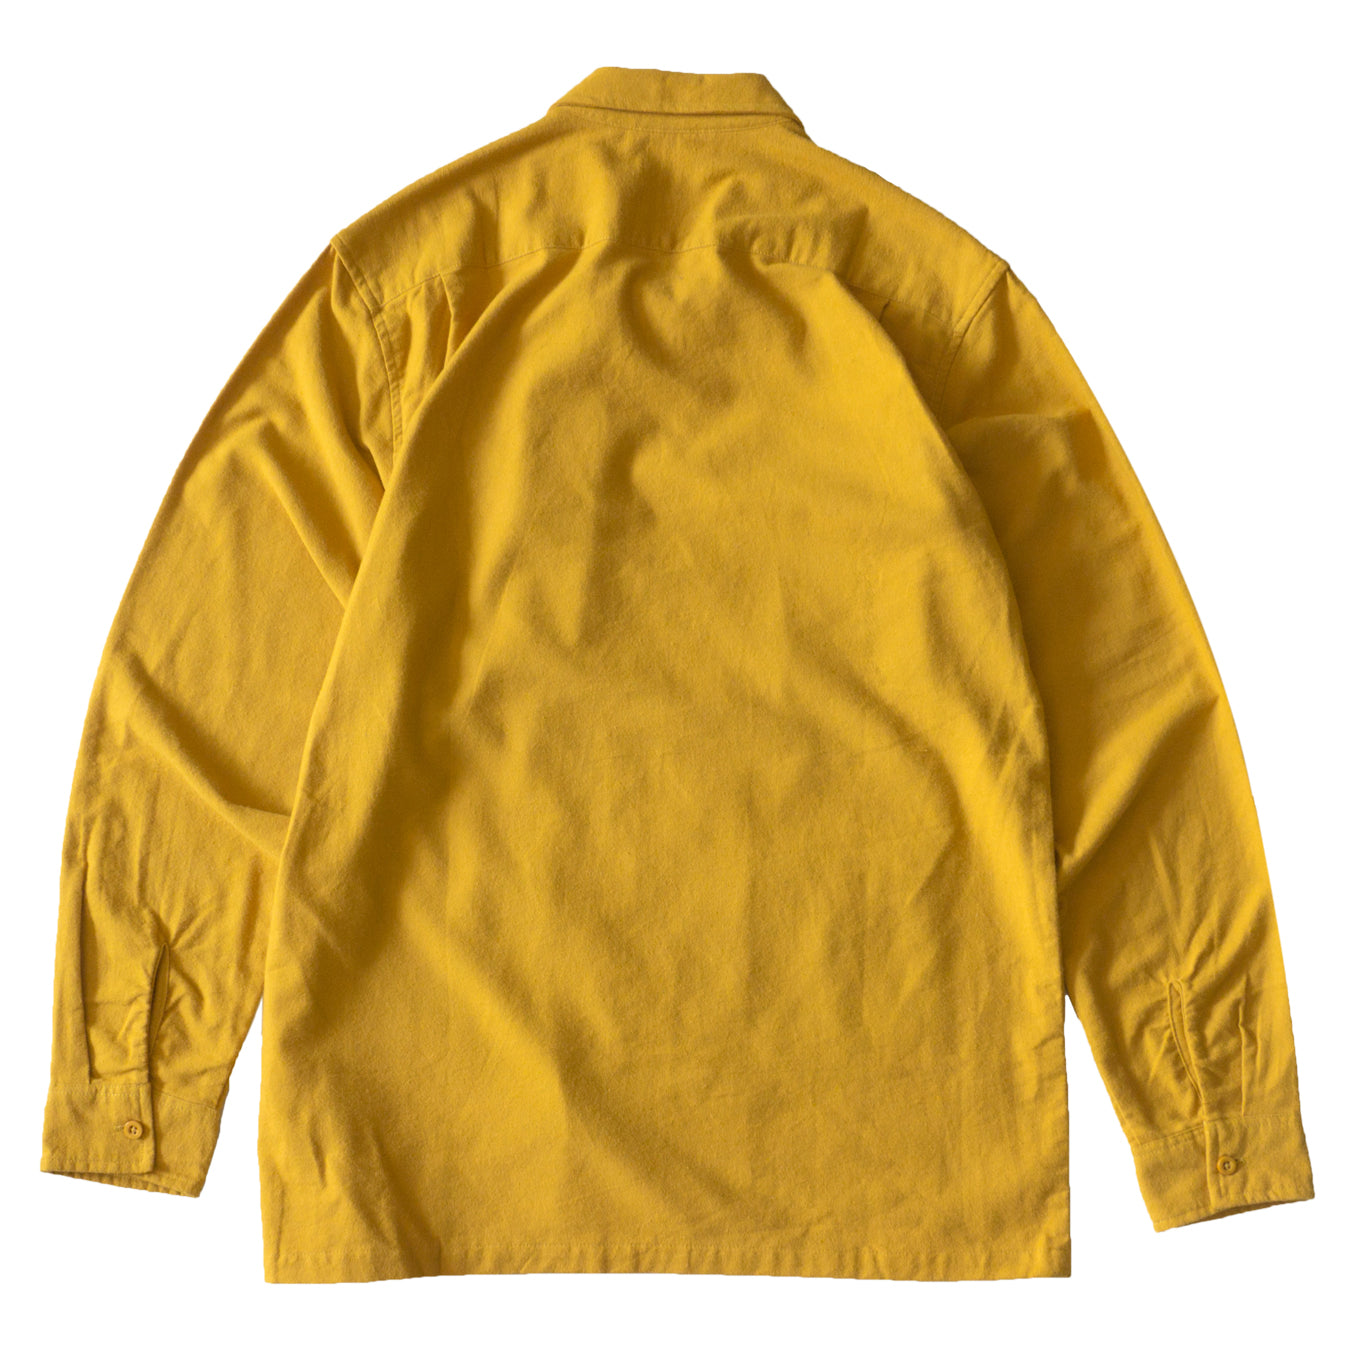 Flannel Zip Shirt - Mustard